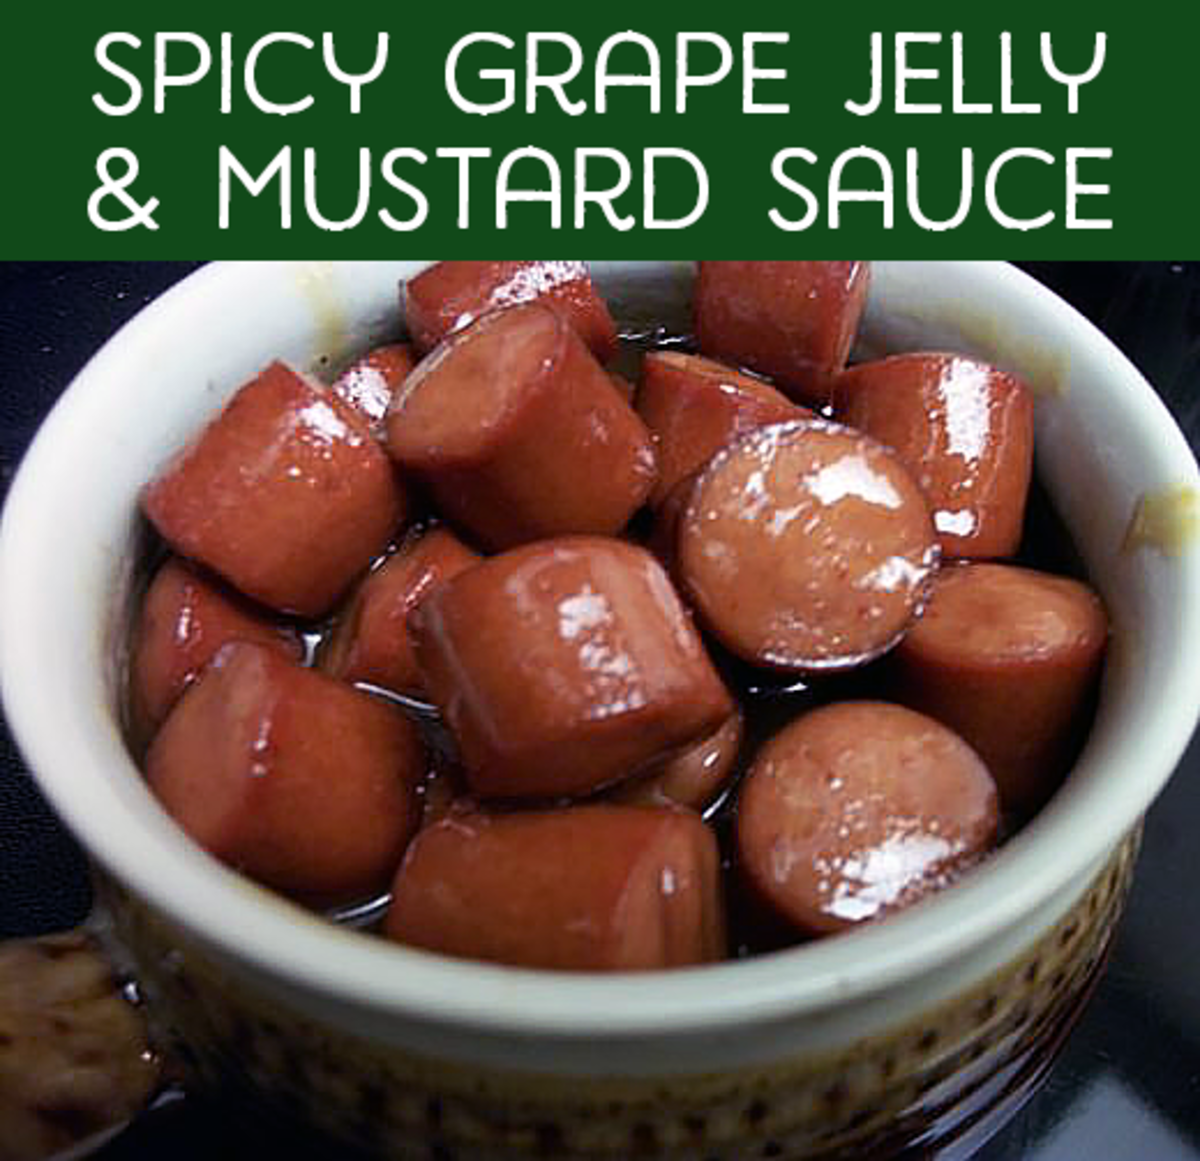 Cocktail weenies in Spicy Grape Jelly and Mustard.